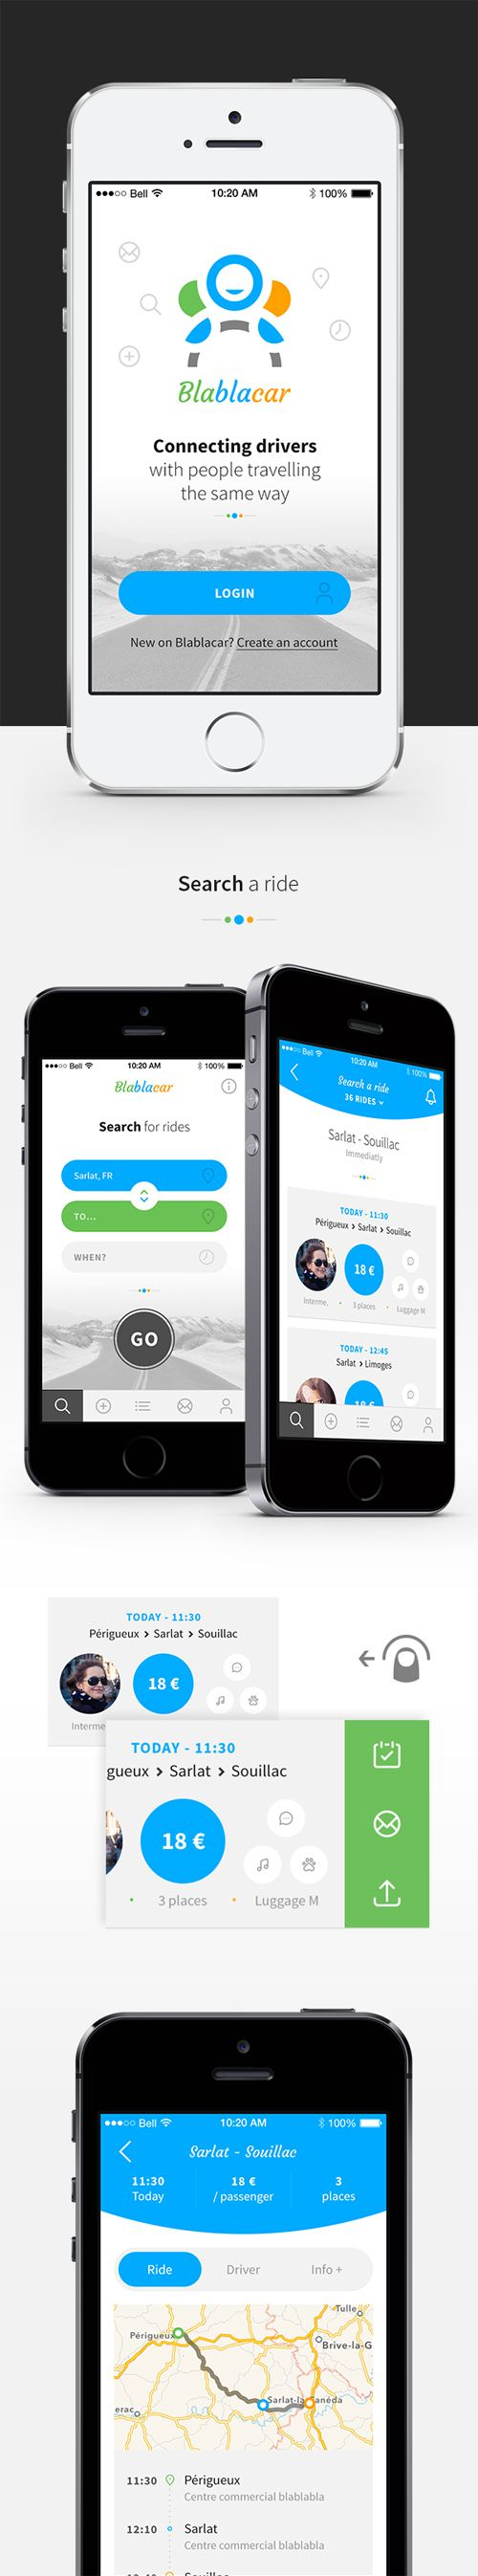 35 Modern Mobile App UI Designs with Amazing User Experience